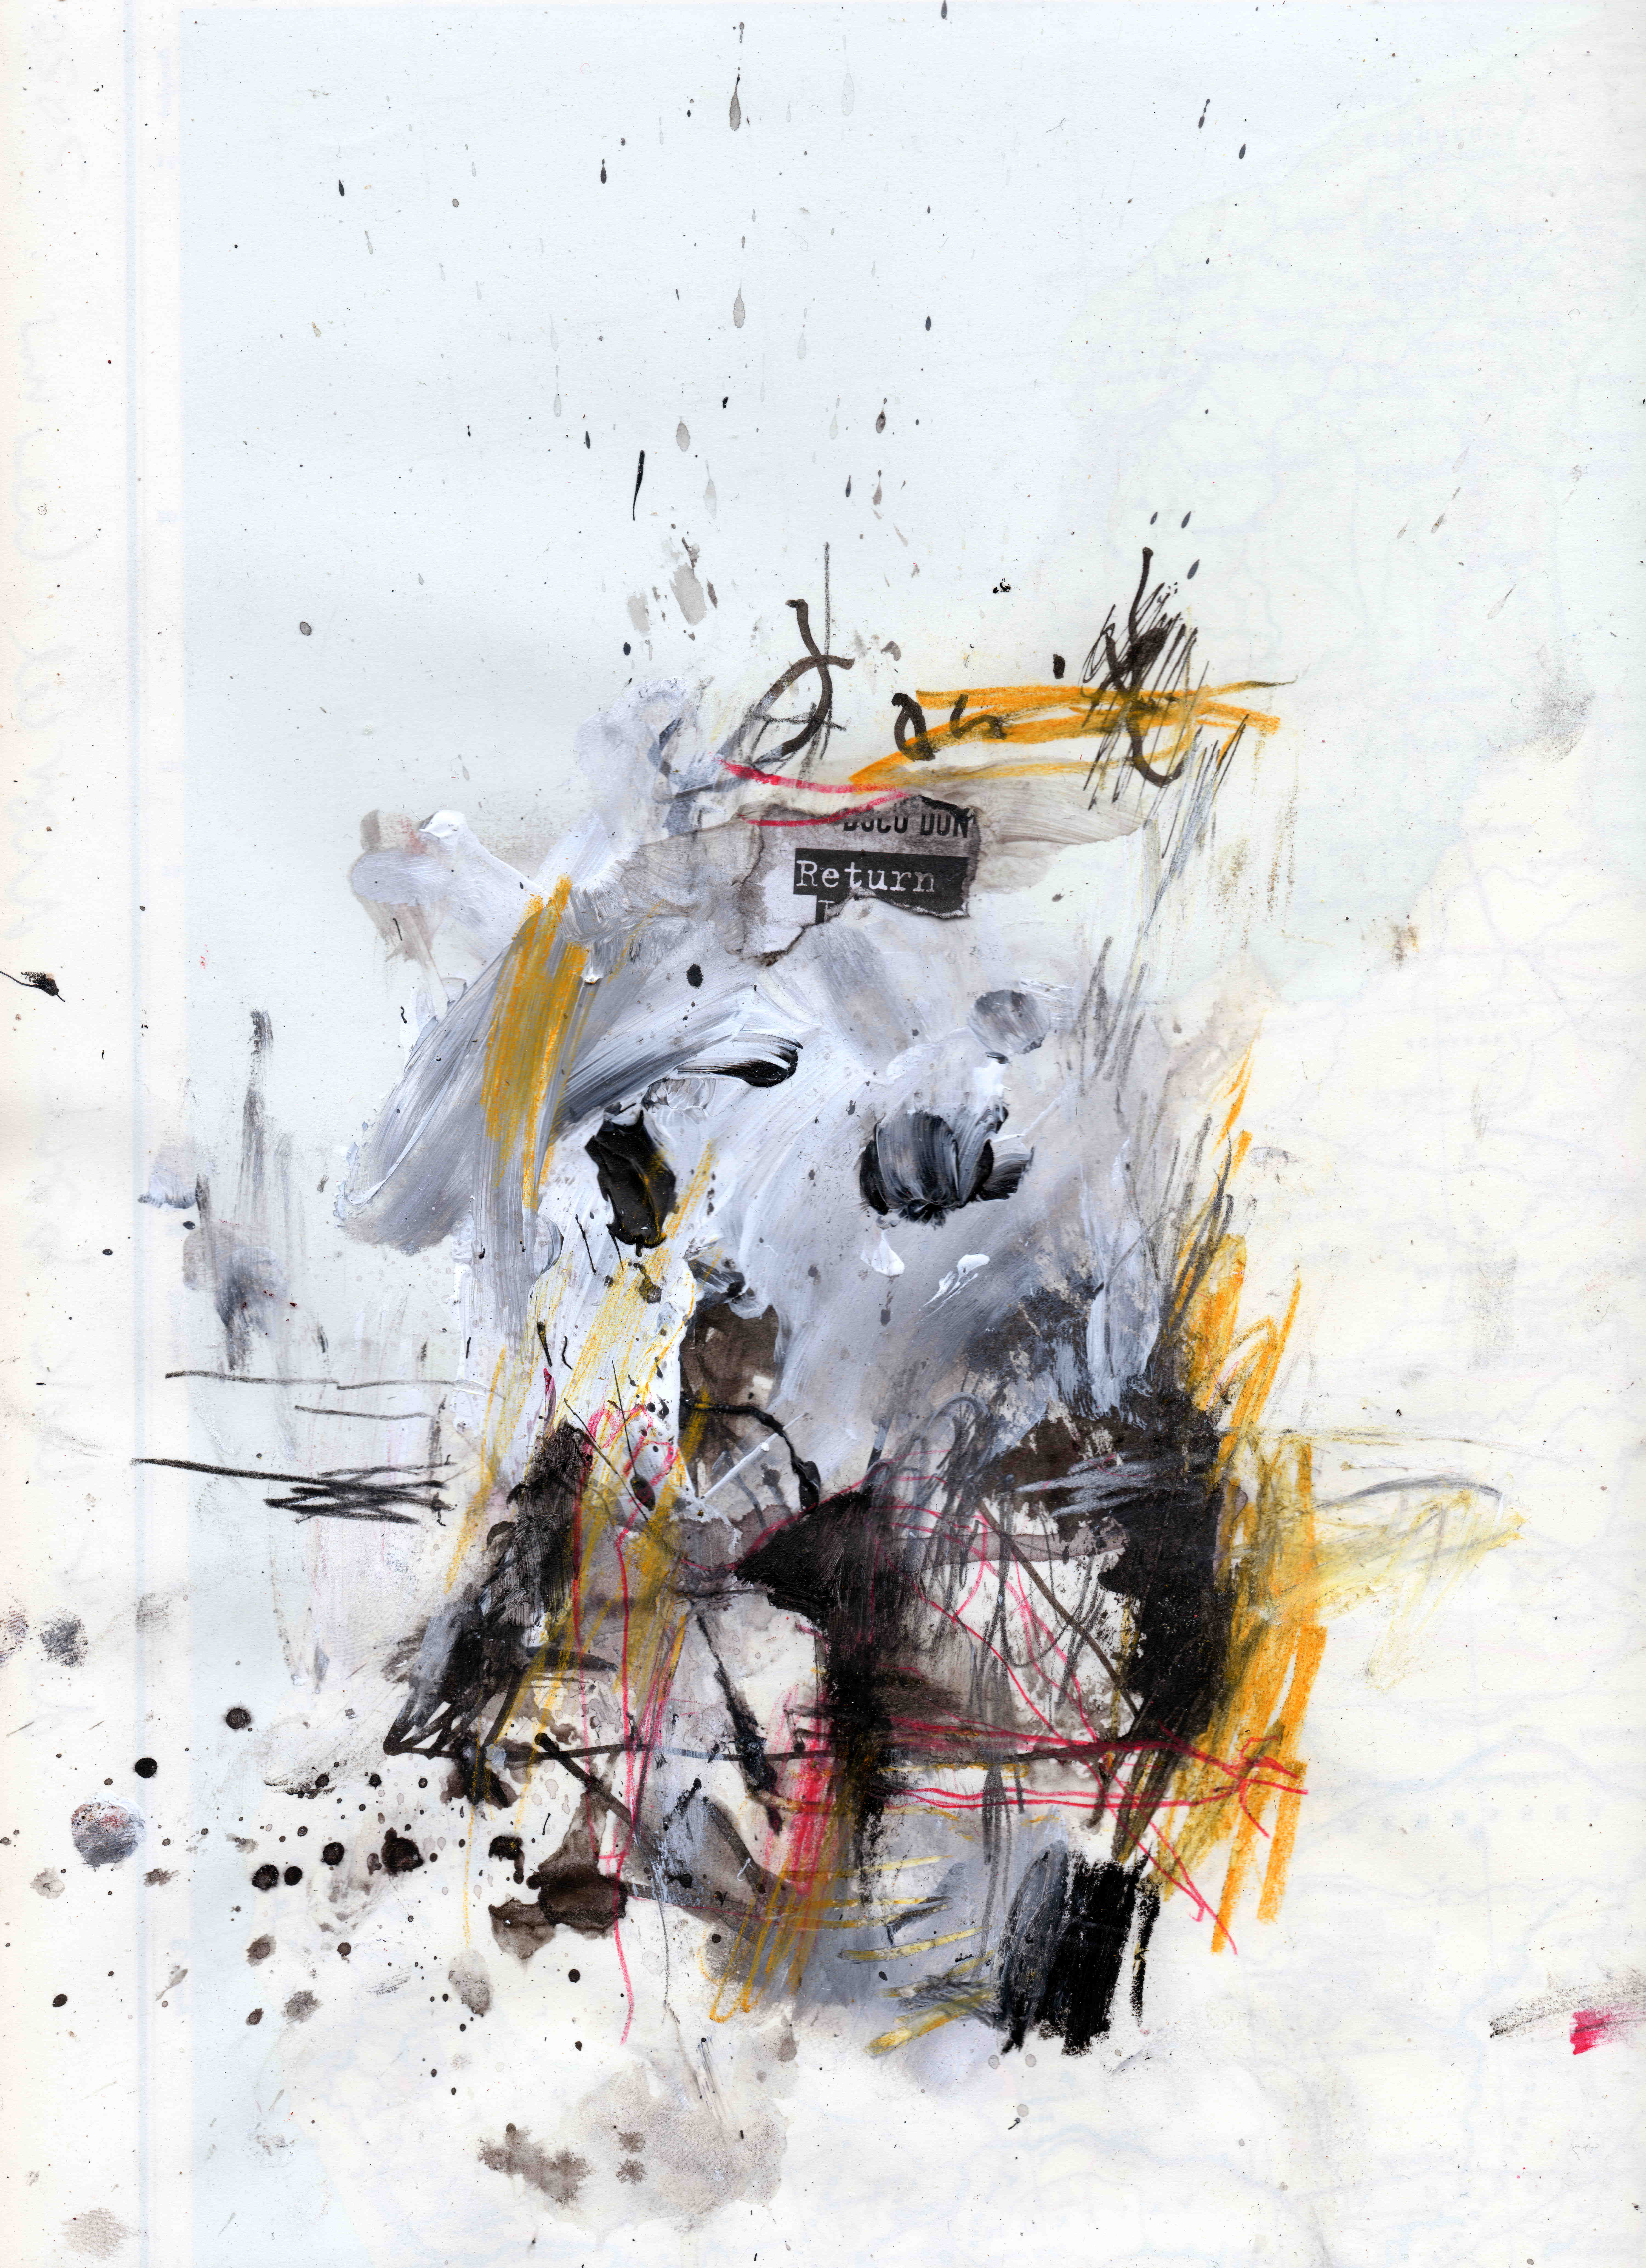 Don't look back, mixed media on paper, 22,7 x 30,5 cm, 2020 MH9